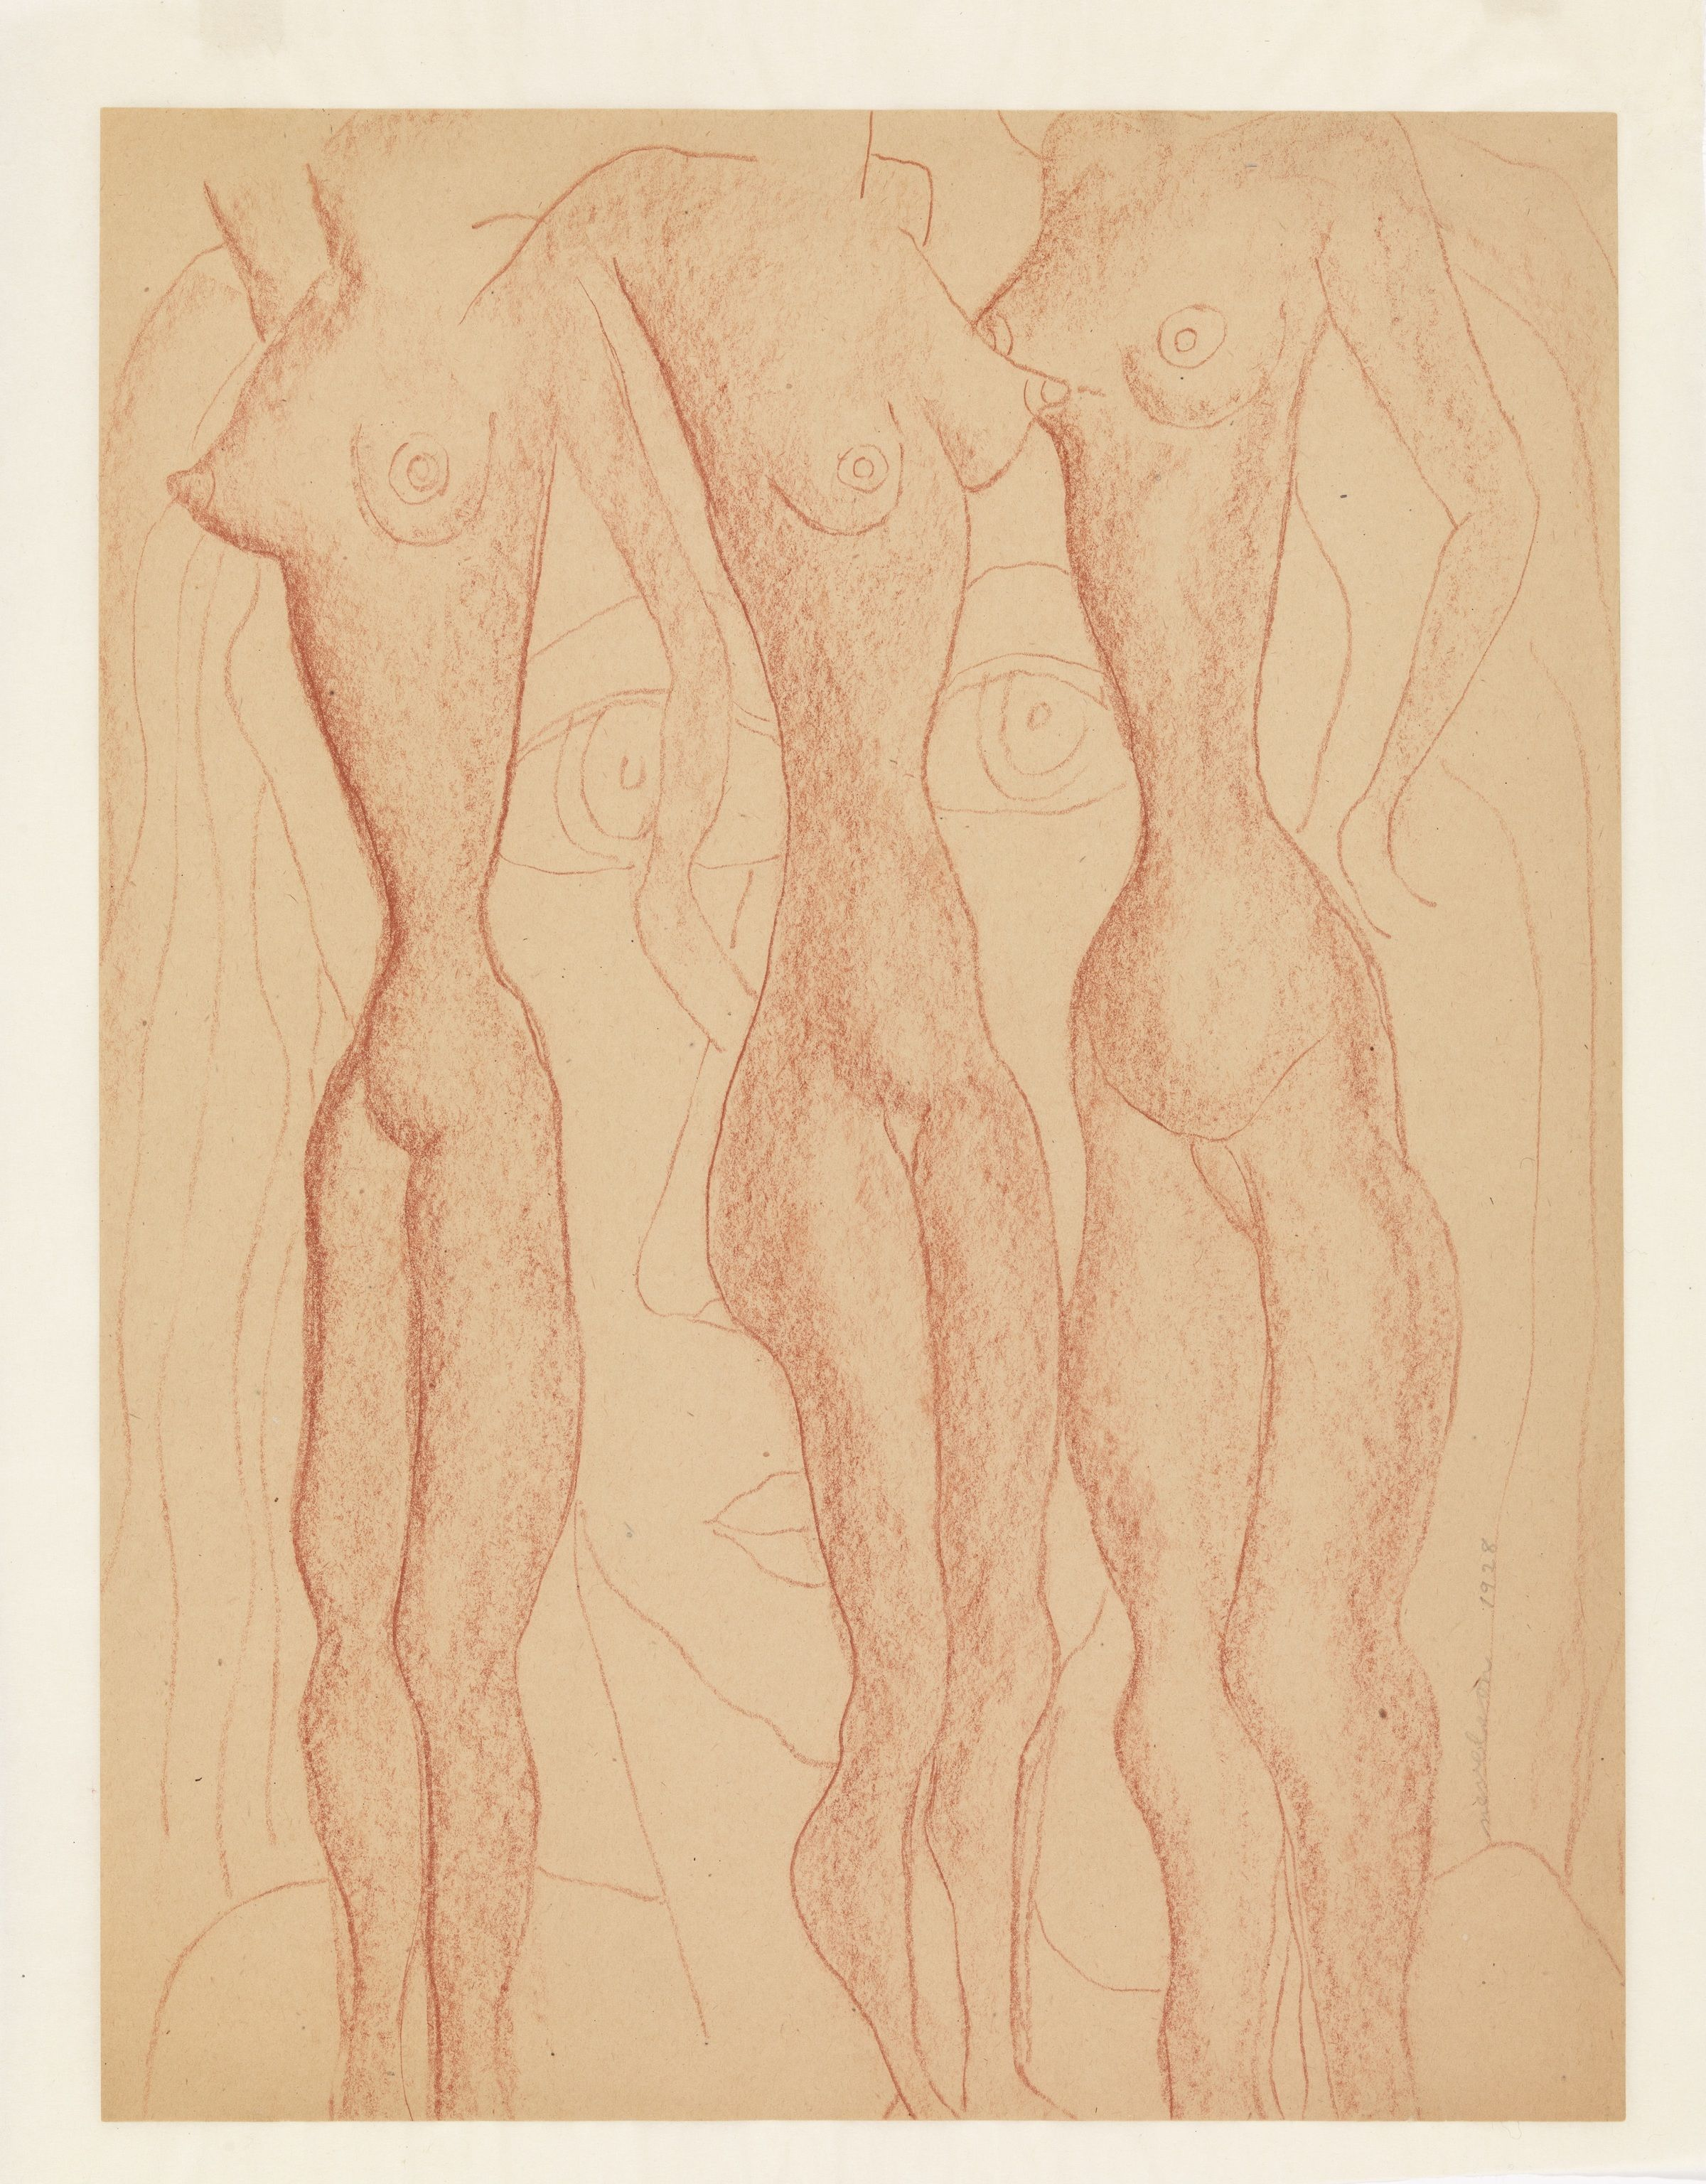 Louise Nevelson (1899-1988), Untitled , 1928. Fabricated red chalk on paper: sheet, 17 5/8 × 13 3/8 in. (44.8 × 34 cm); mount: 19 9/16 × 15 1/2 in. (49.7 × 39.4 cm). Whitney Museum of American Art, New York; gift of the artist 69.220. © 2018 Estate of Louise Nevelson/Artists Rights Society (ARS), New York